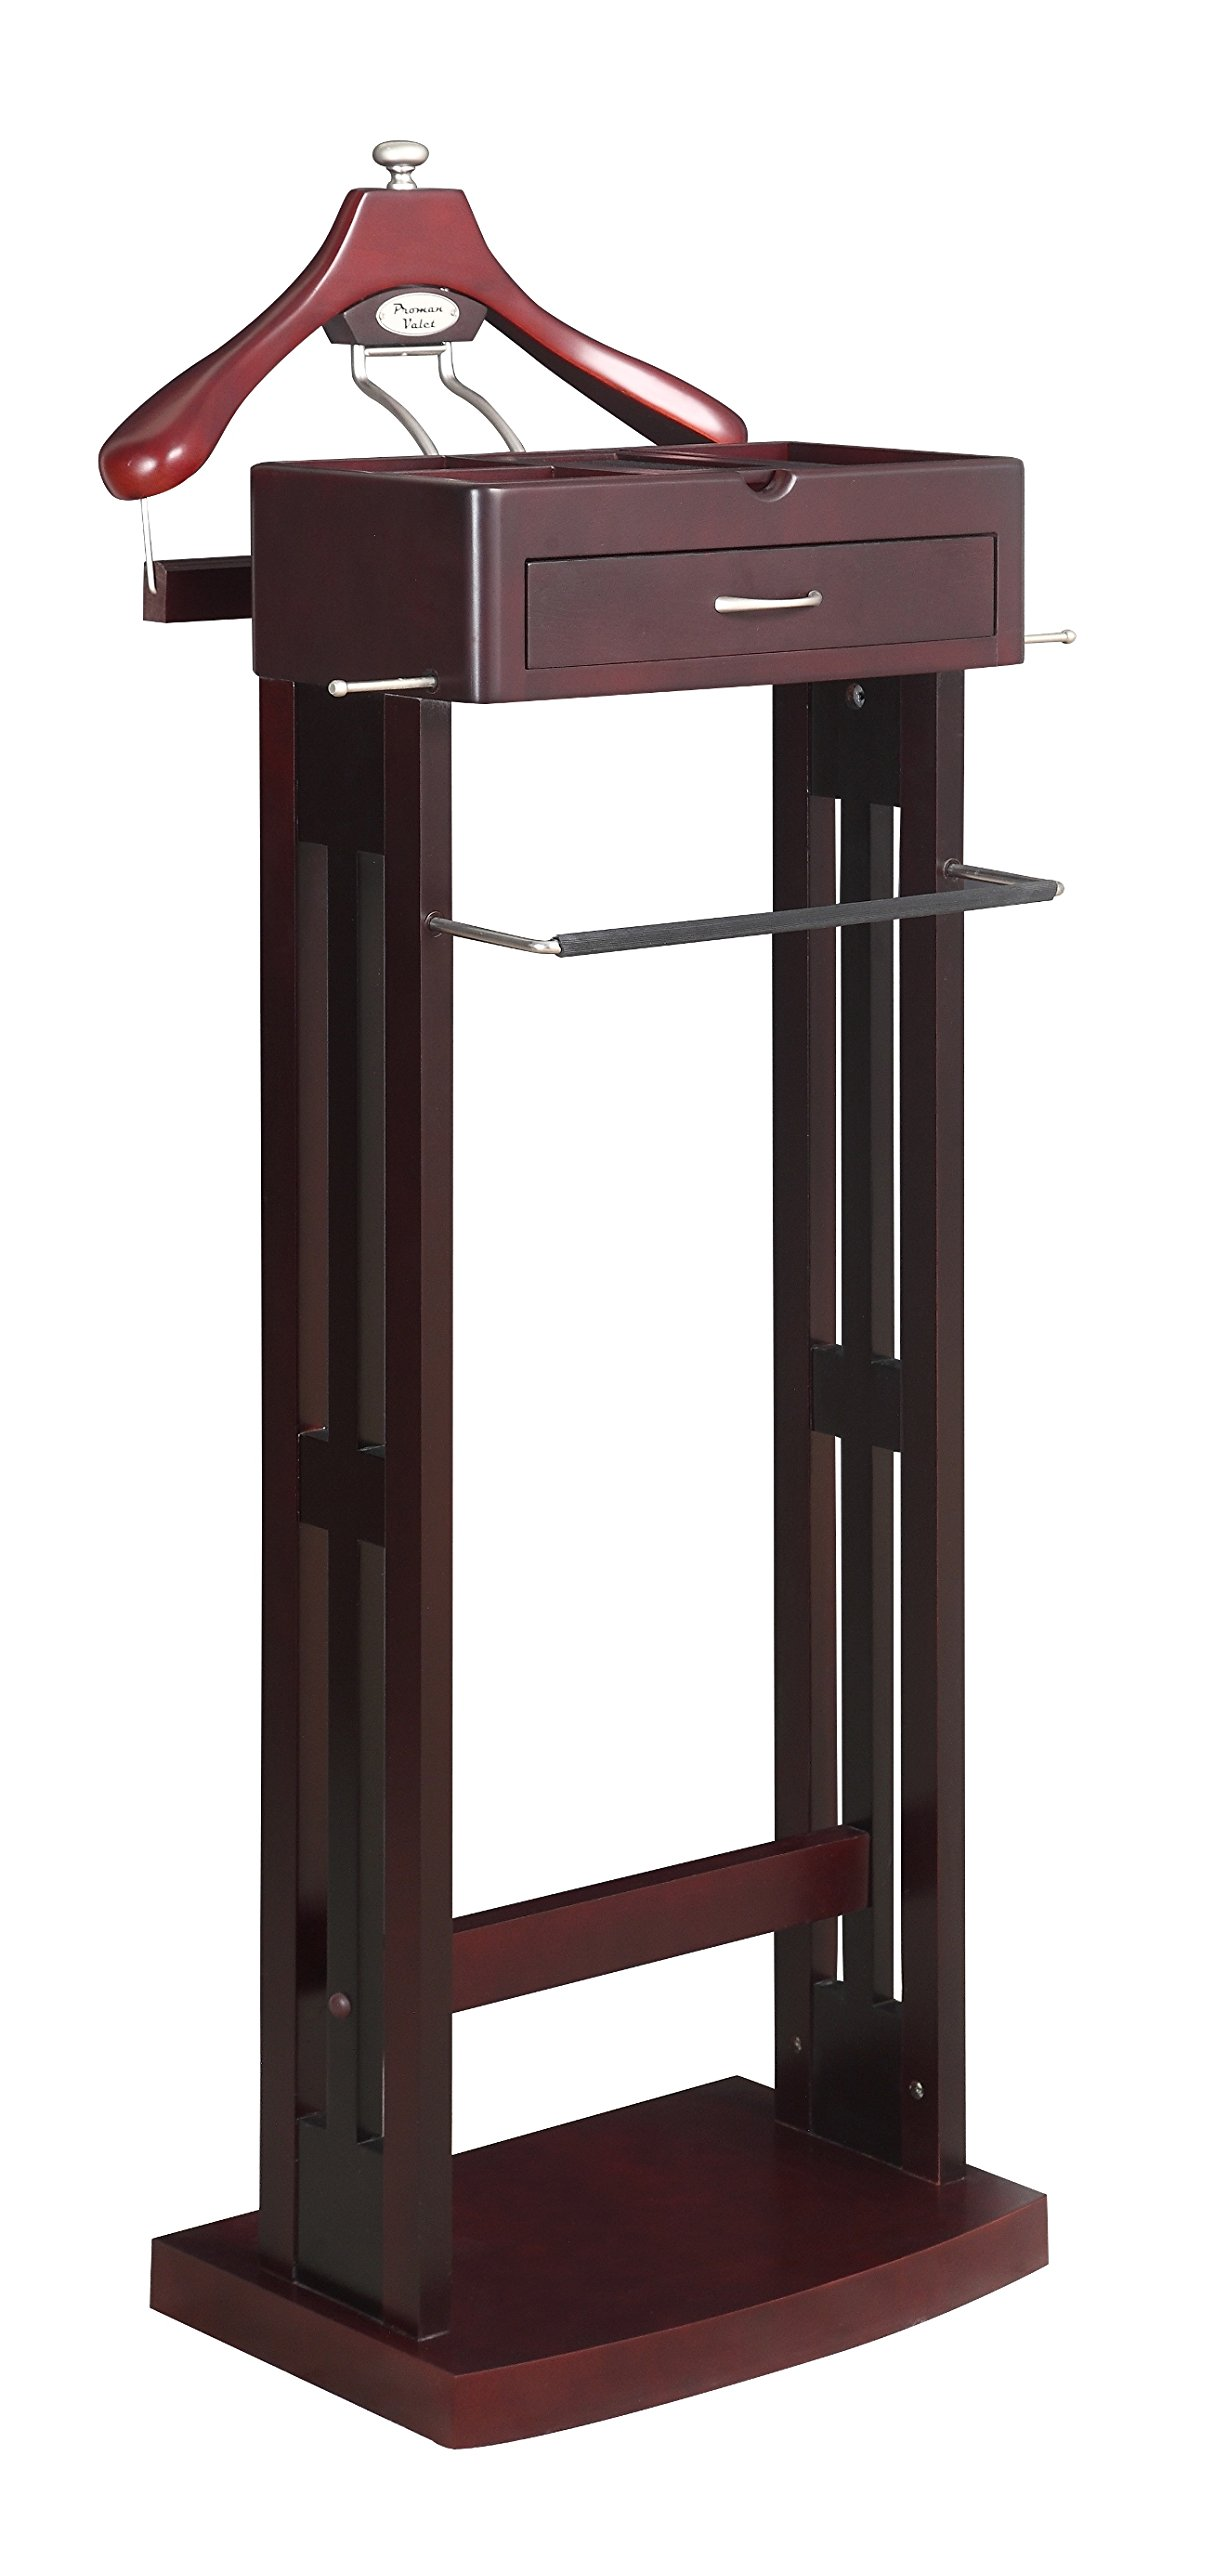 Proman Products VL16245 Wardrobe Valet by Proman Products